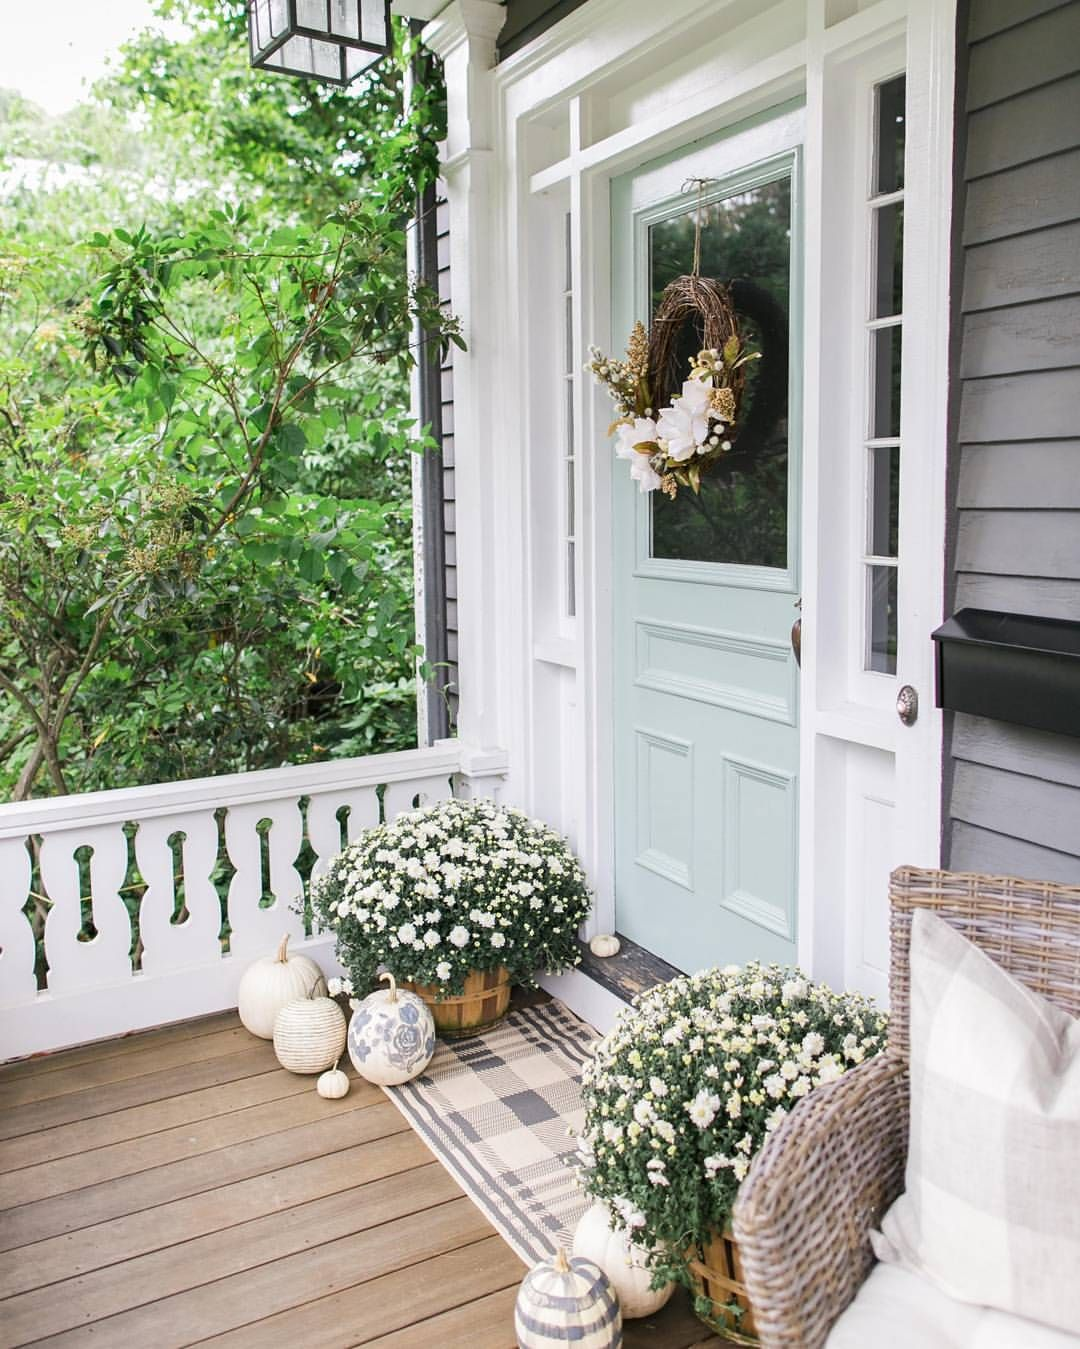 2 763 Likes 28 Comments Home Bunch Homebunch On Instagram Beautiful Take On Falldecor By Exterior House Colors House With Porch House Colors